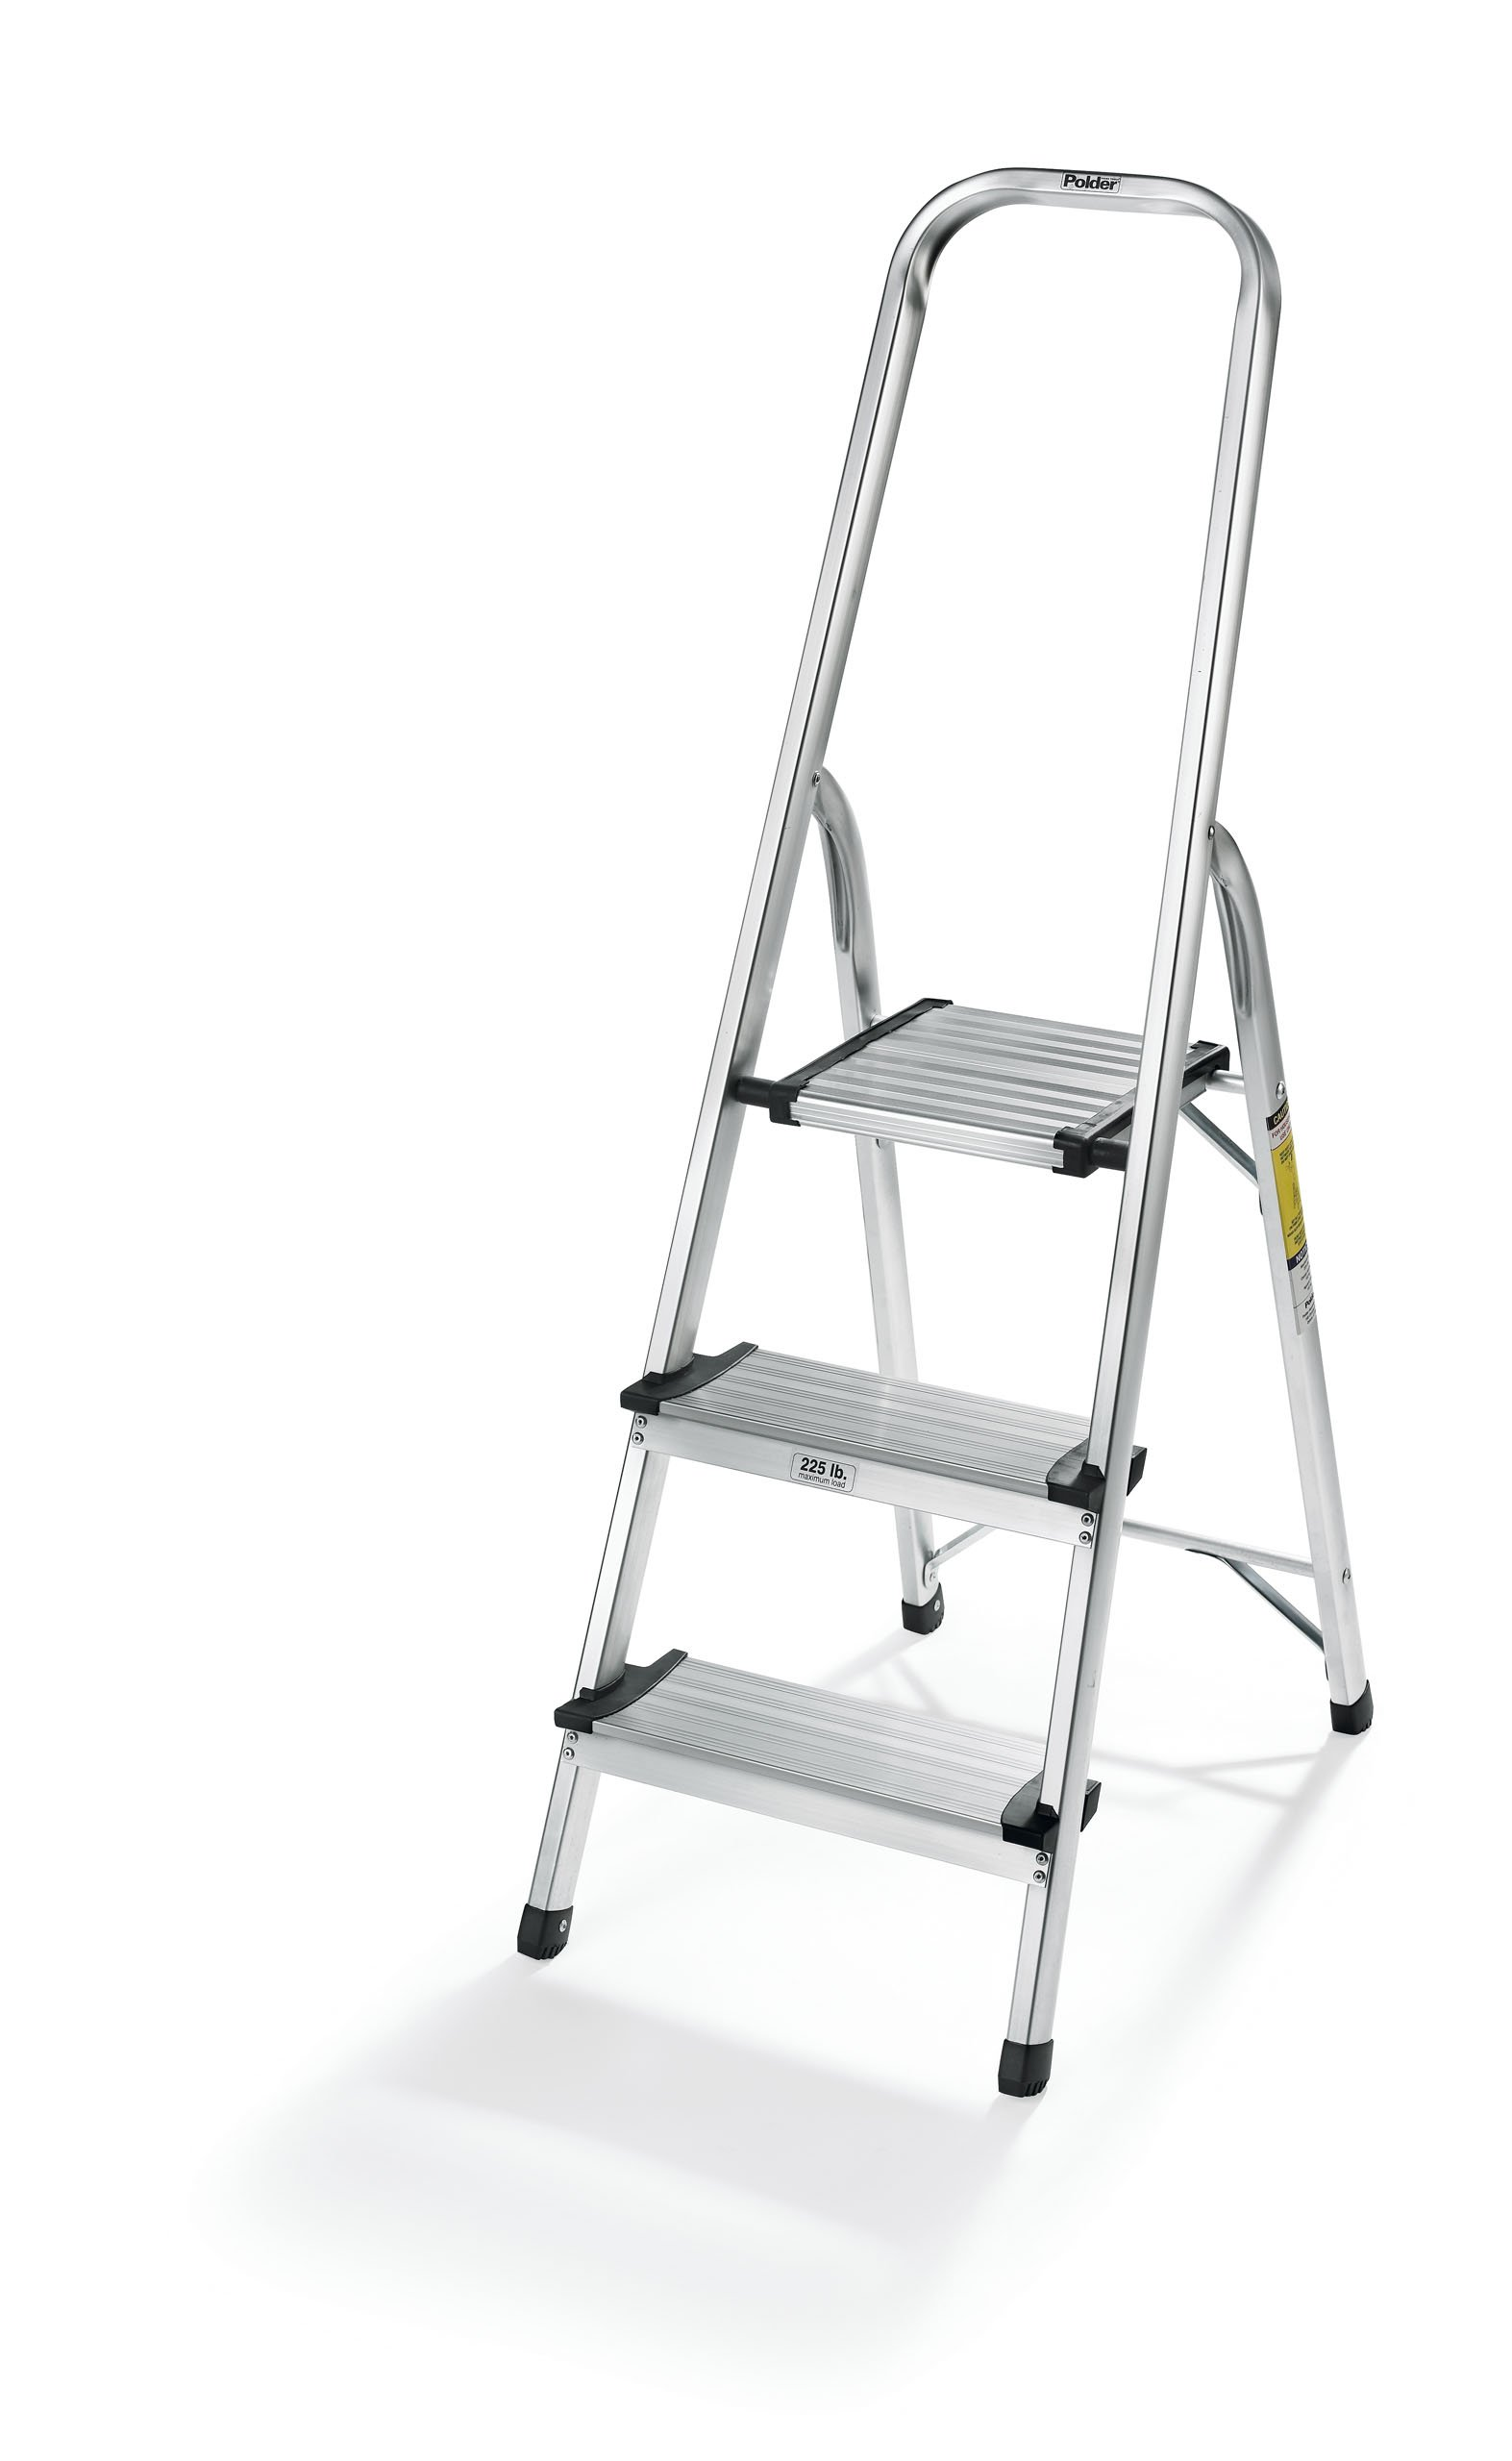 Polder LDR-3500RM Ultralight 3-Step Stool, 52.5'' Tall, 24.5'' Top Step, Aluminum